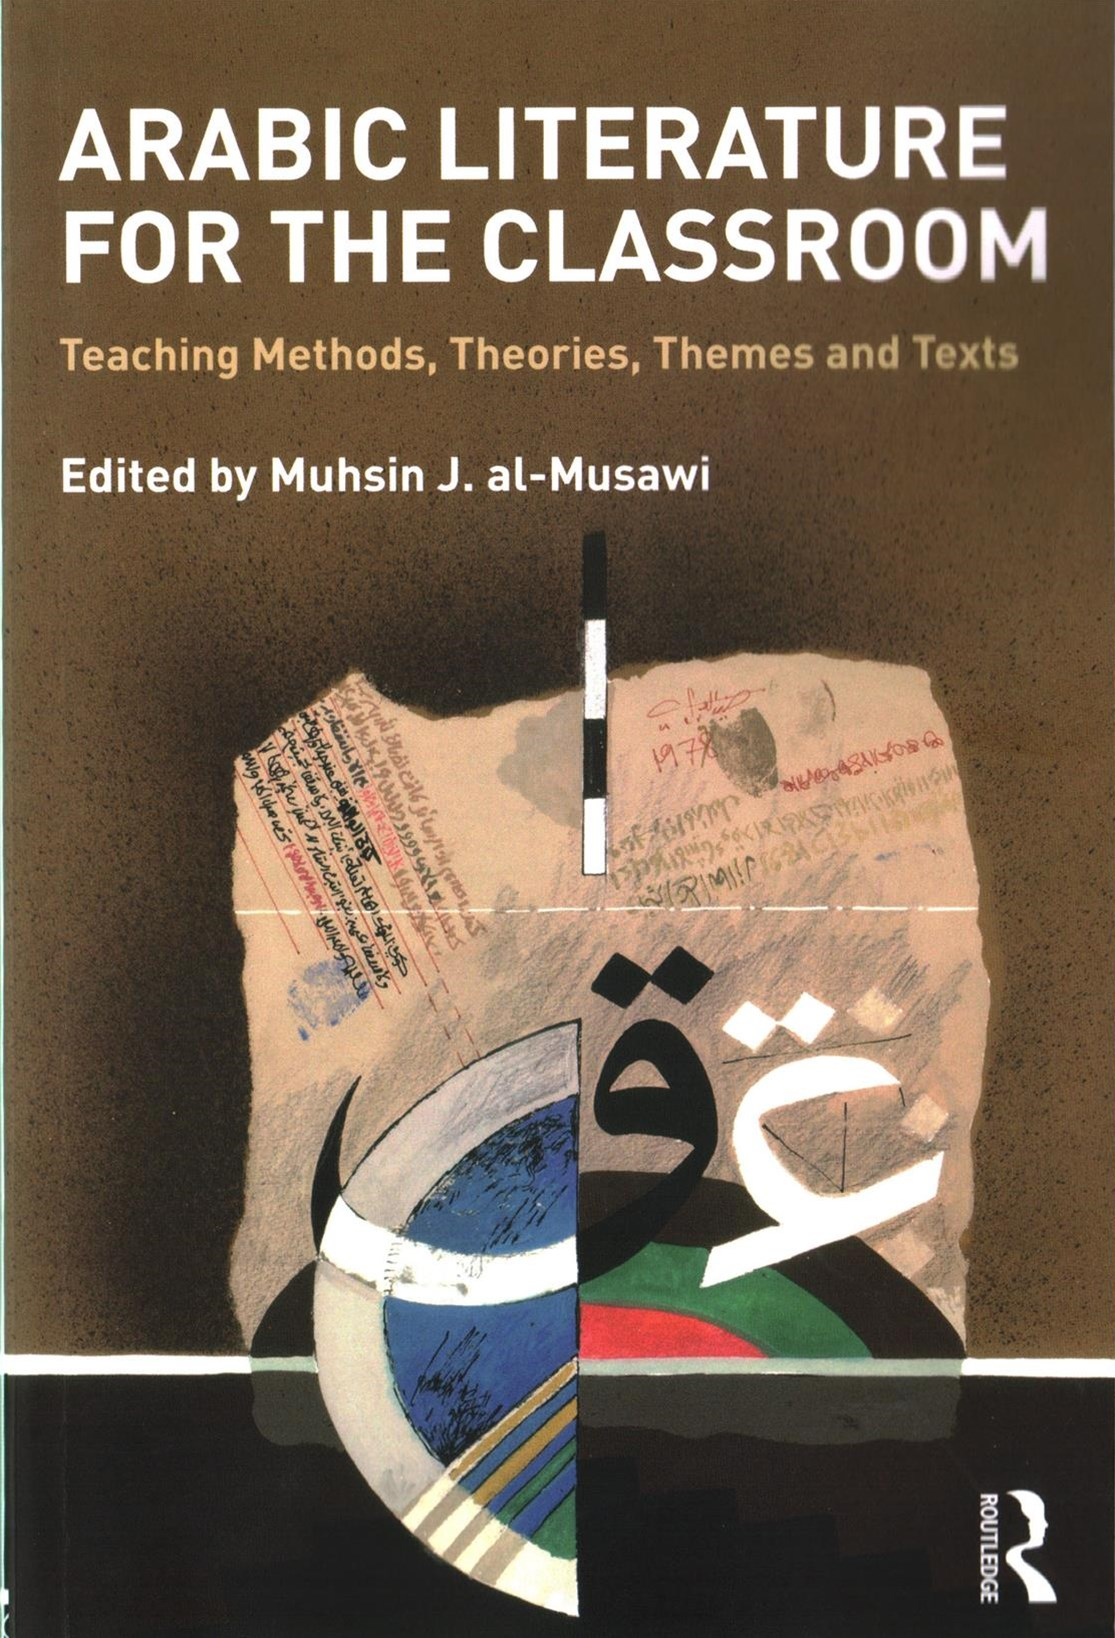 Arabic Literature for the Classroom